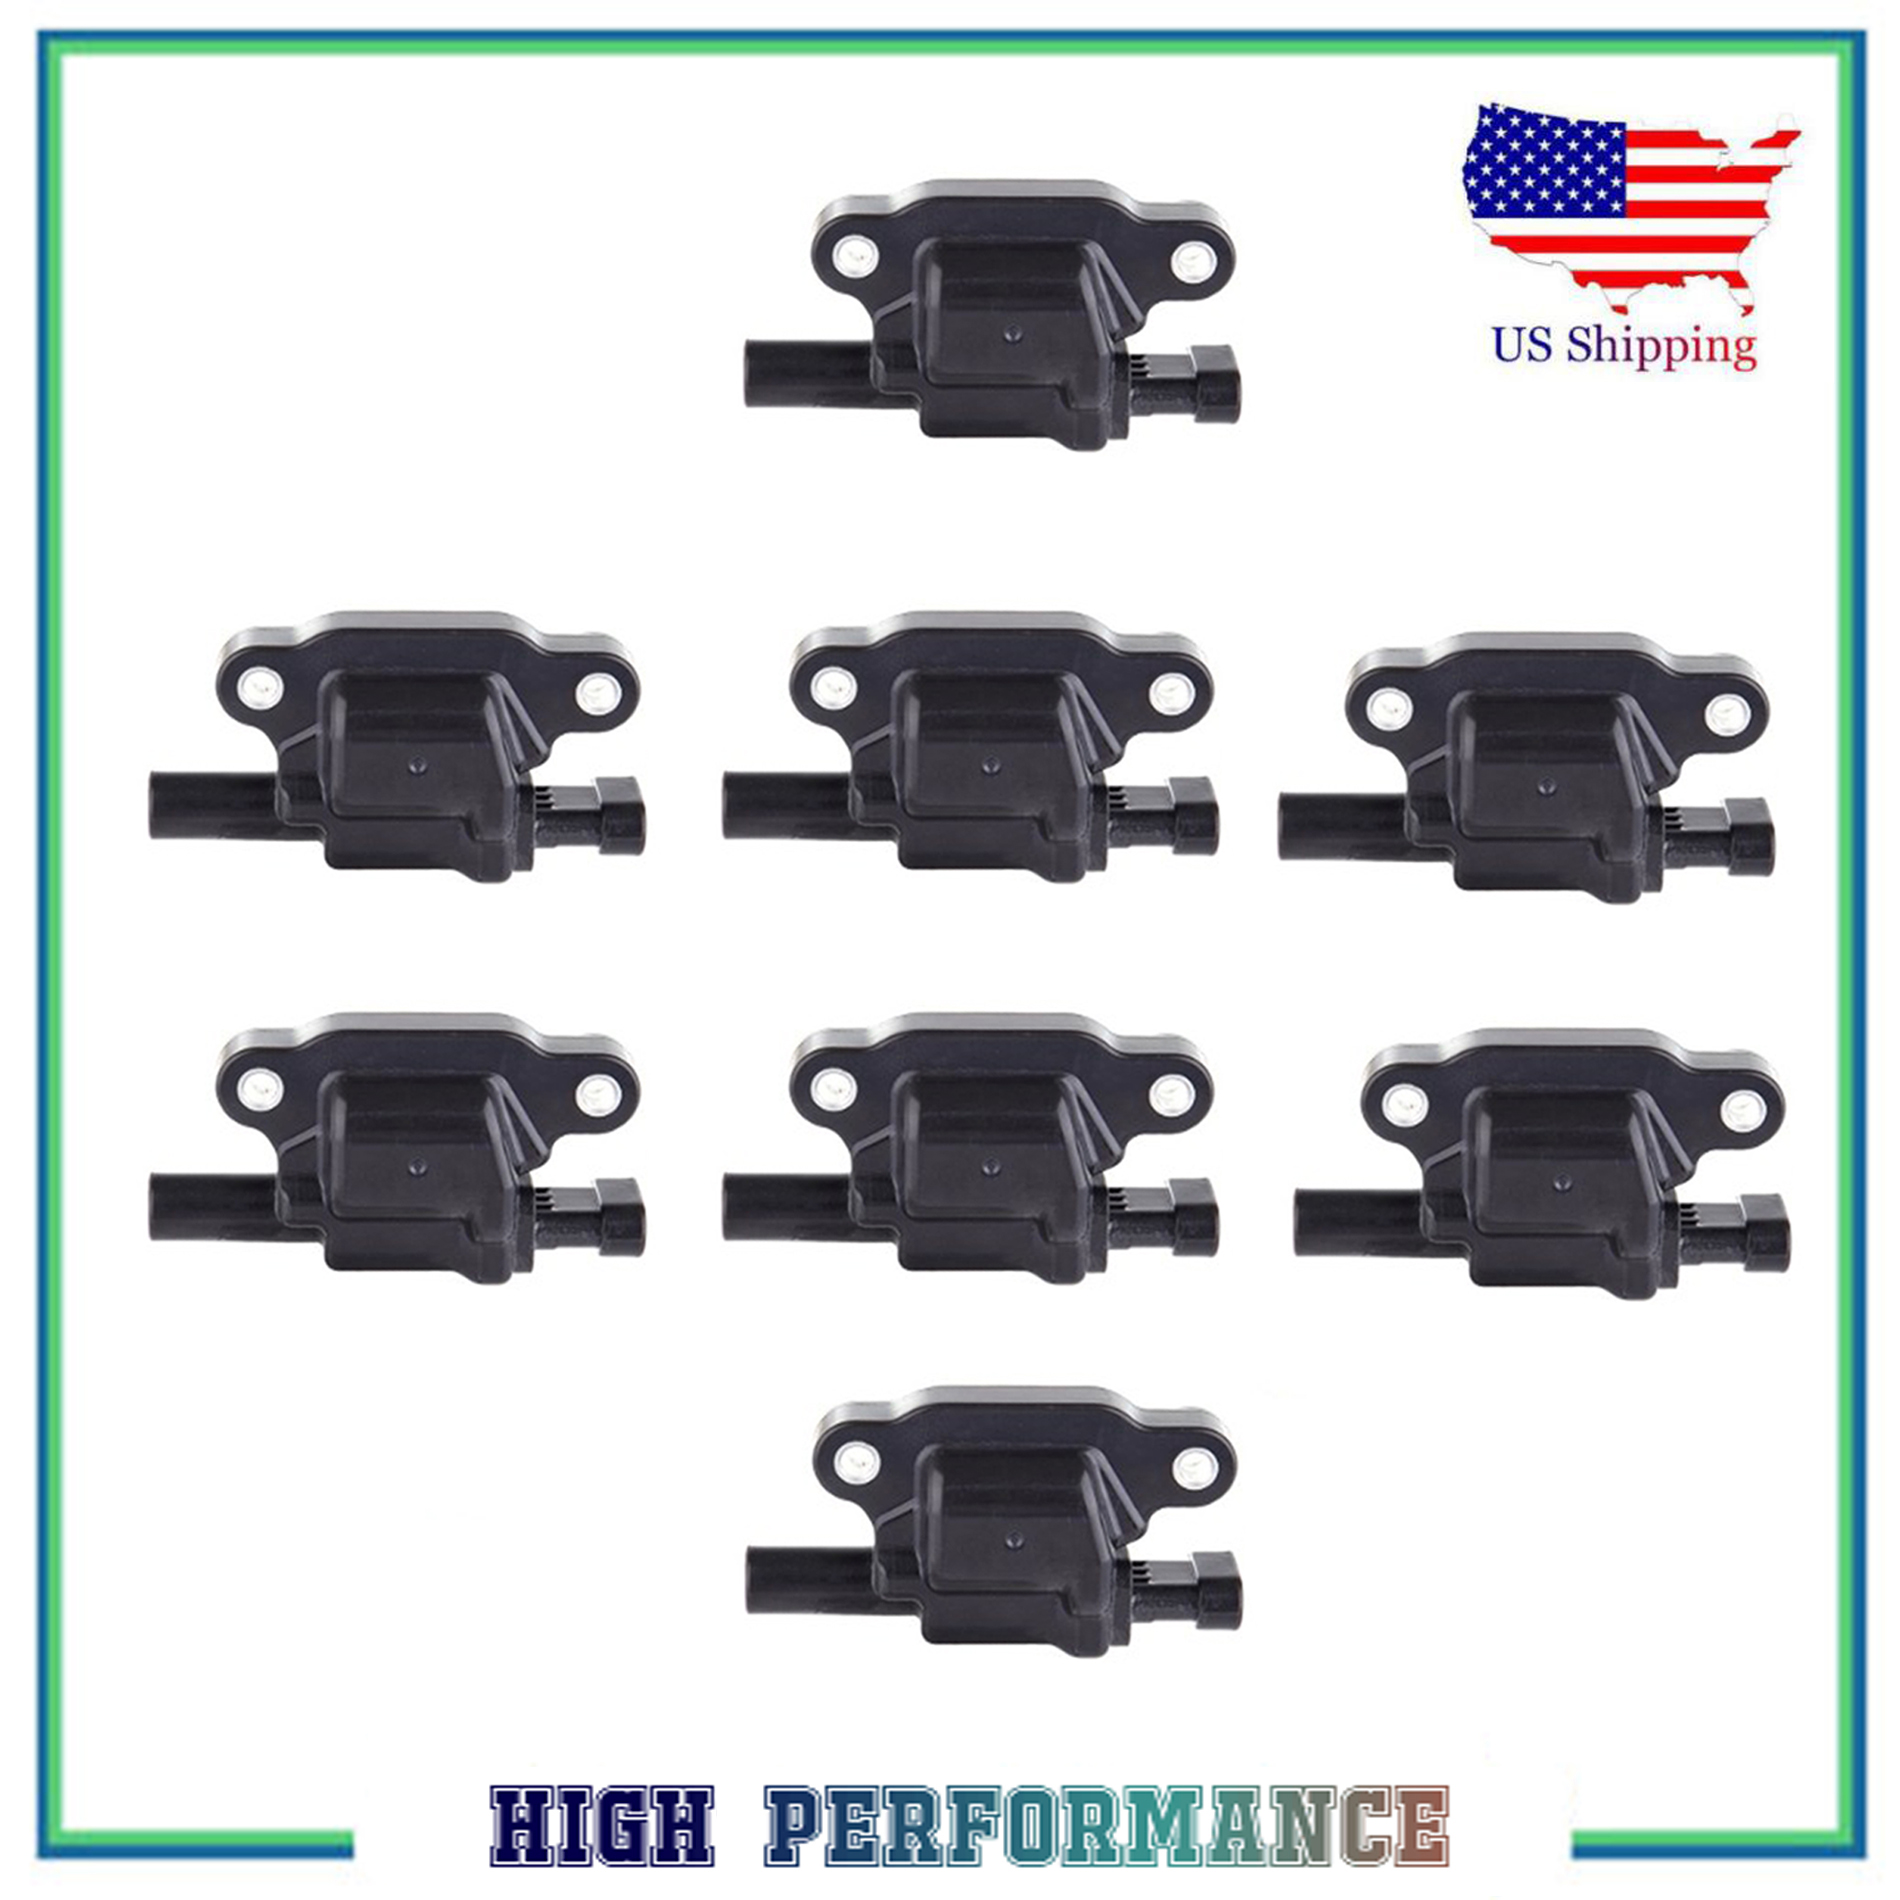 IC508 Fits 2005 Chrysler 300 C1414 2005 Jeep Grand Cherokee 04-05 Dodge Durango 03-05 Dodge Ram 56028394AC 2005 Magnum UF378 Ignition Coil Pack Set of 8-5.7L V8 Hemi Replaces# 56028394AB